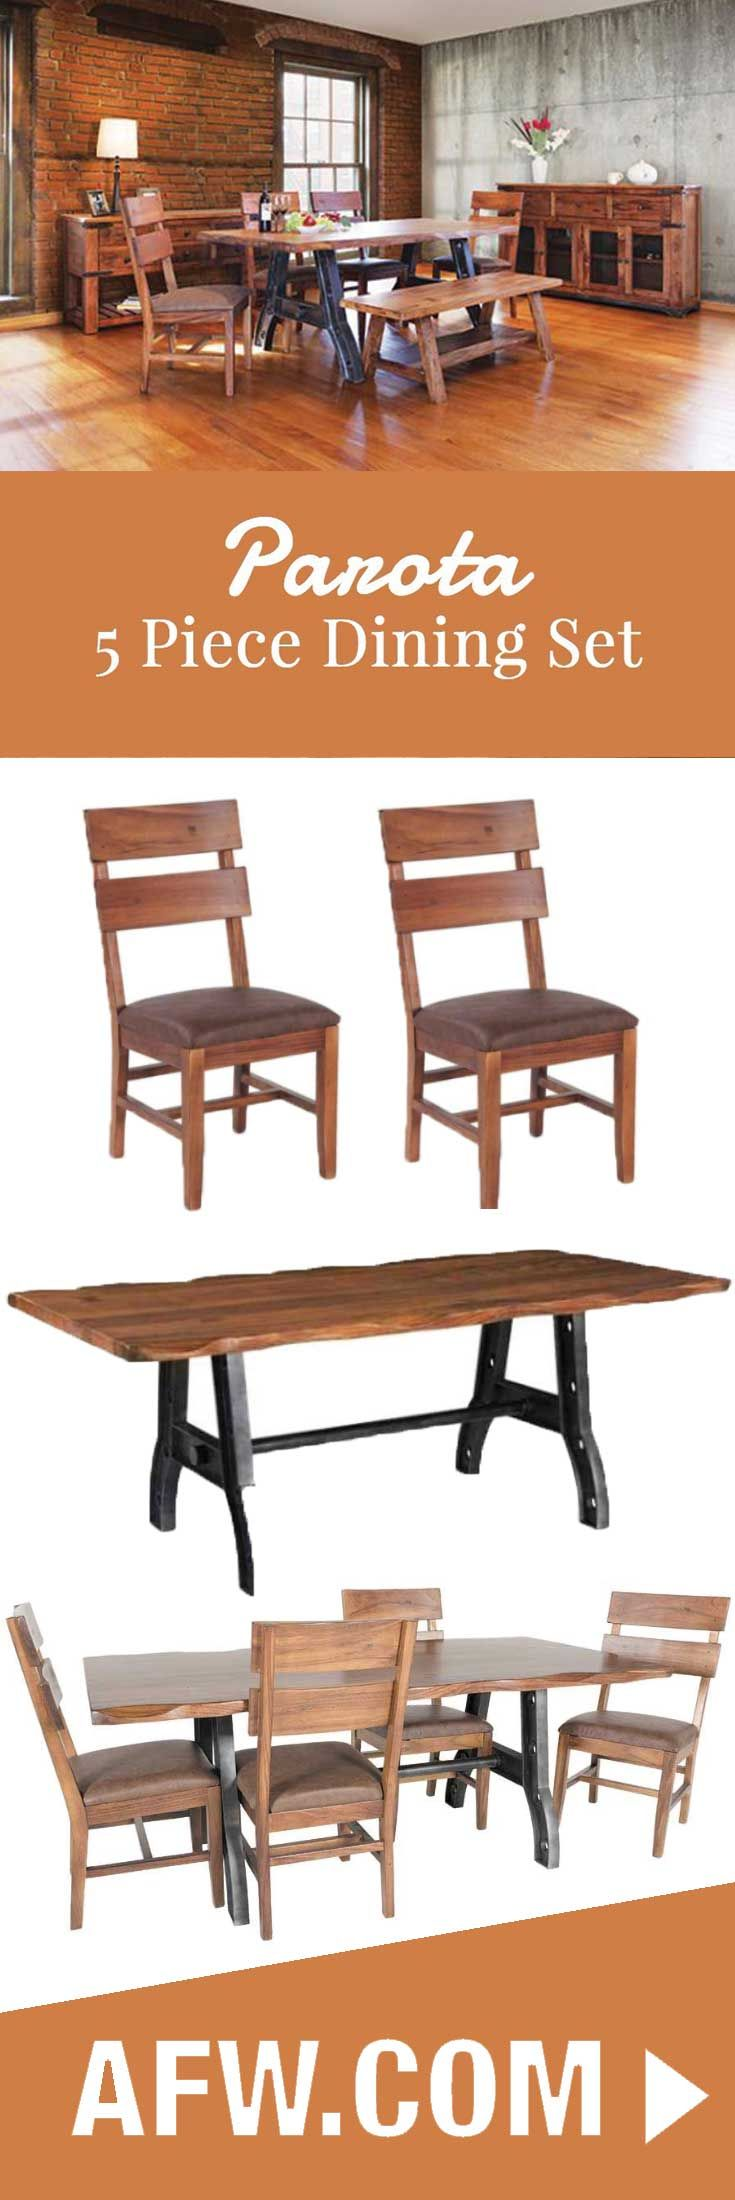 The Parota 5 Piece Dining Room Set By Artisan Home Offers A Rustic And Industrial